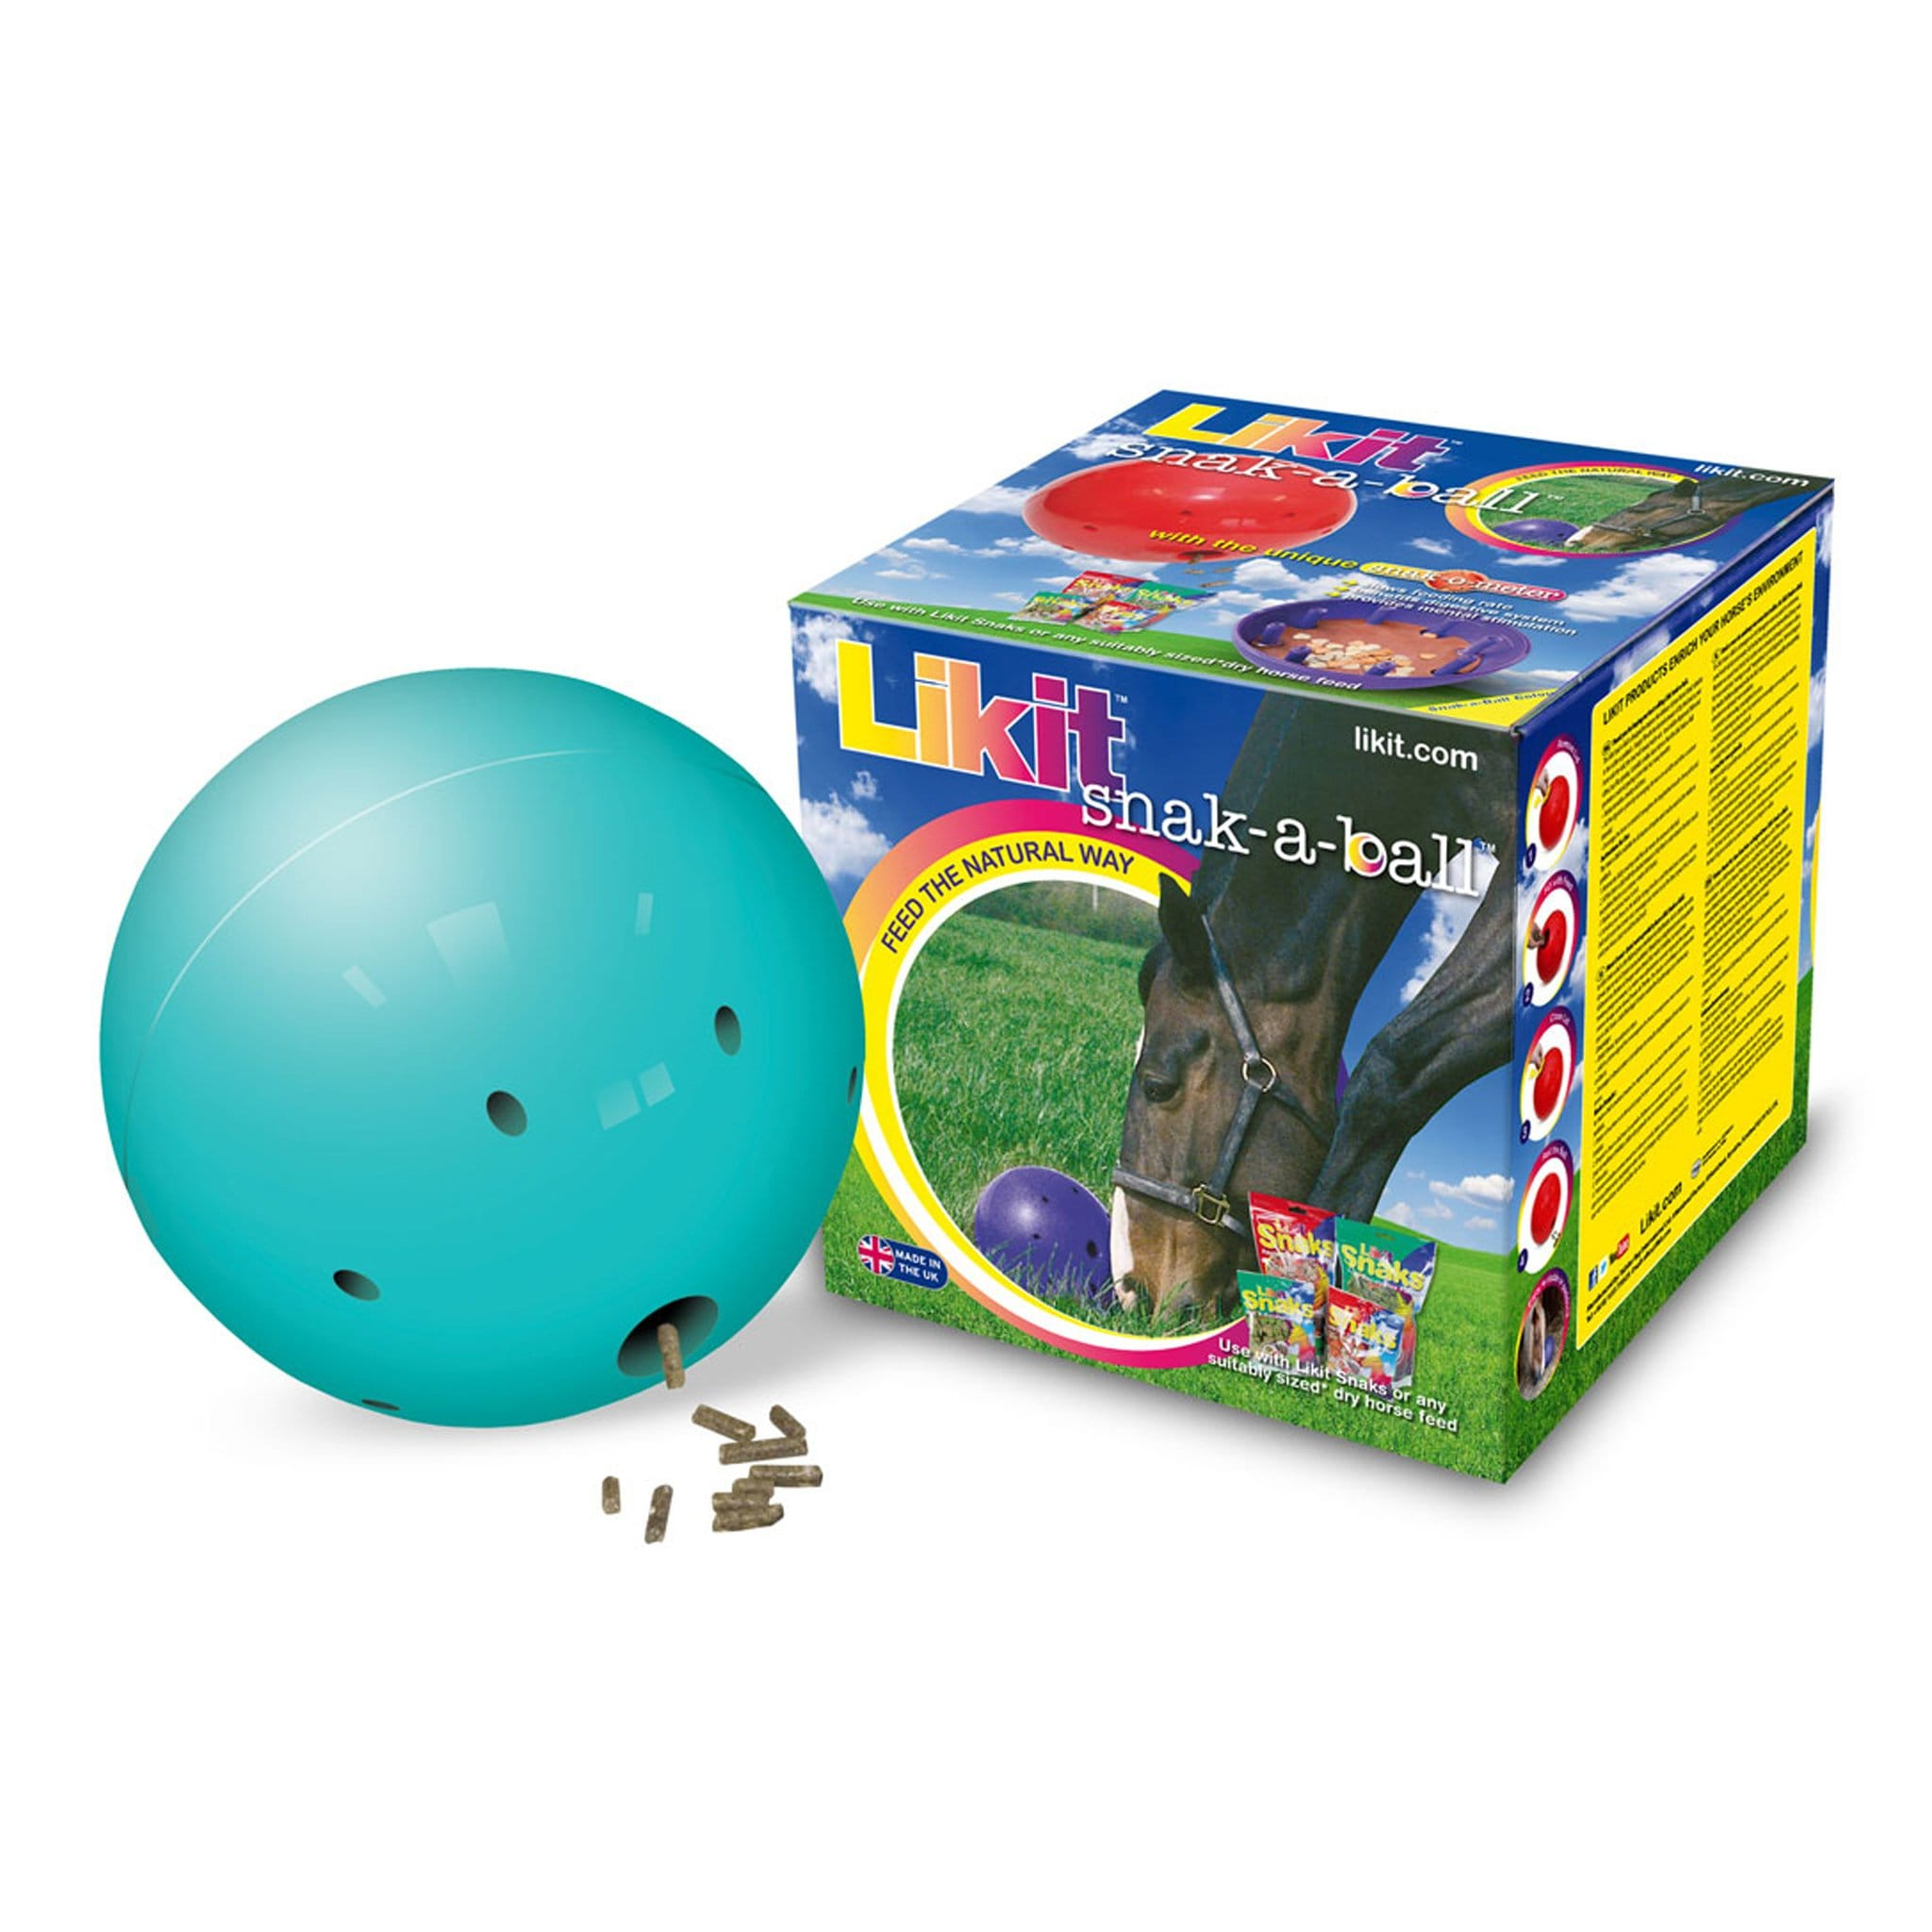 Likit Snak-a-Ball in 13353 Aqua With Box